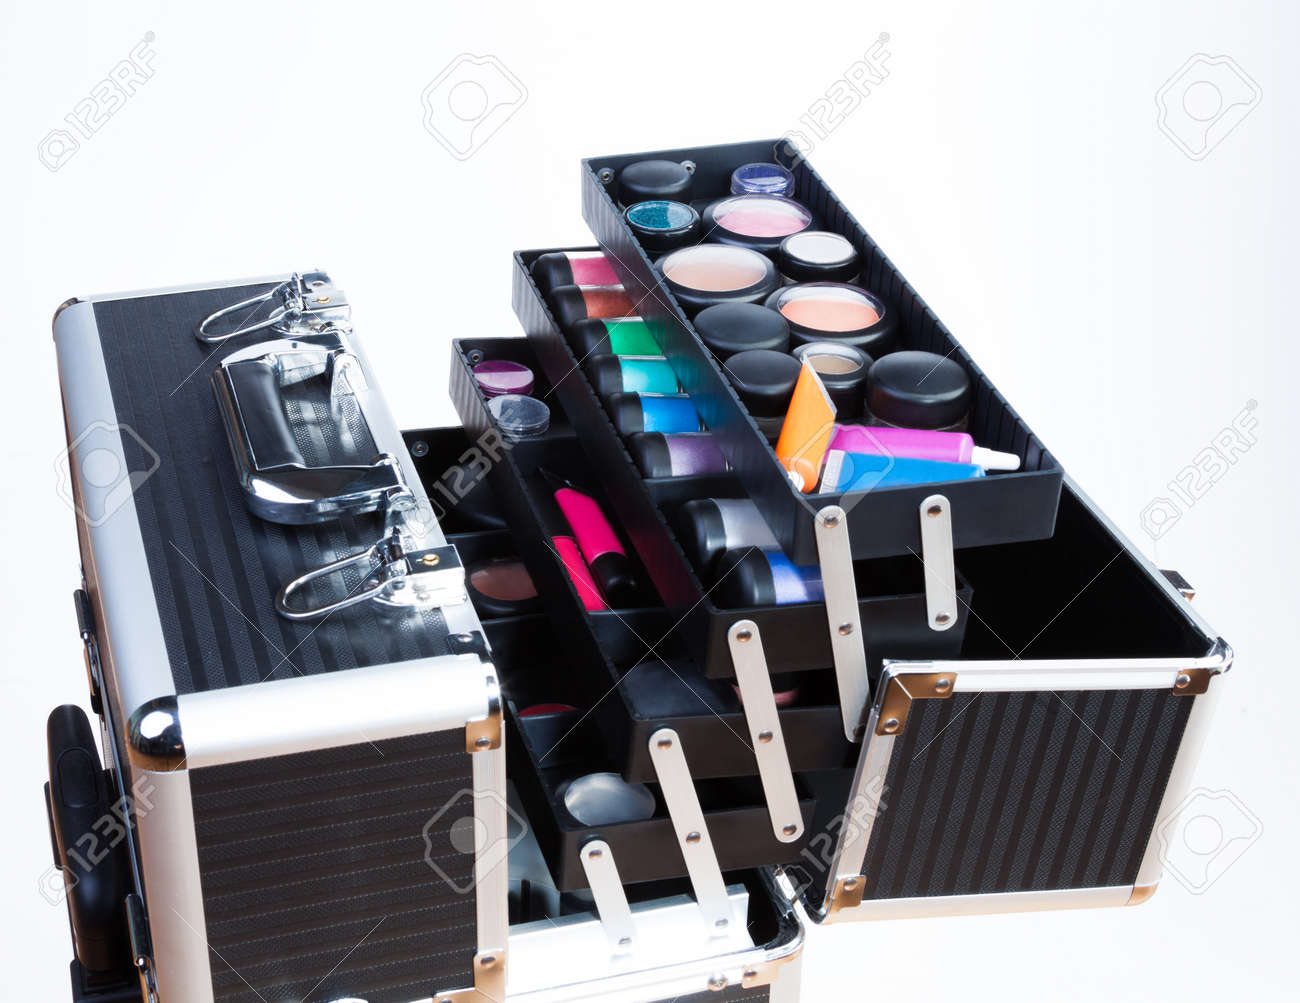 4efe50bbcab3 Large professional makeup container with containers tubes lipsticks..